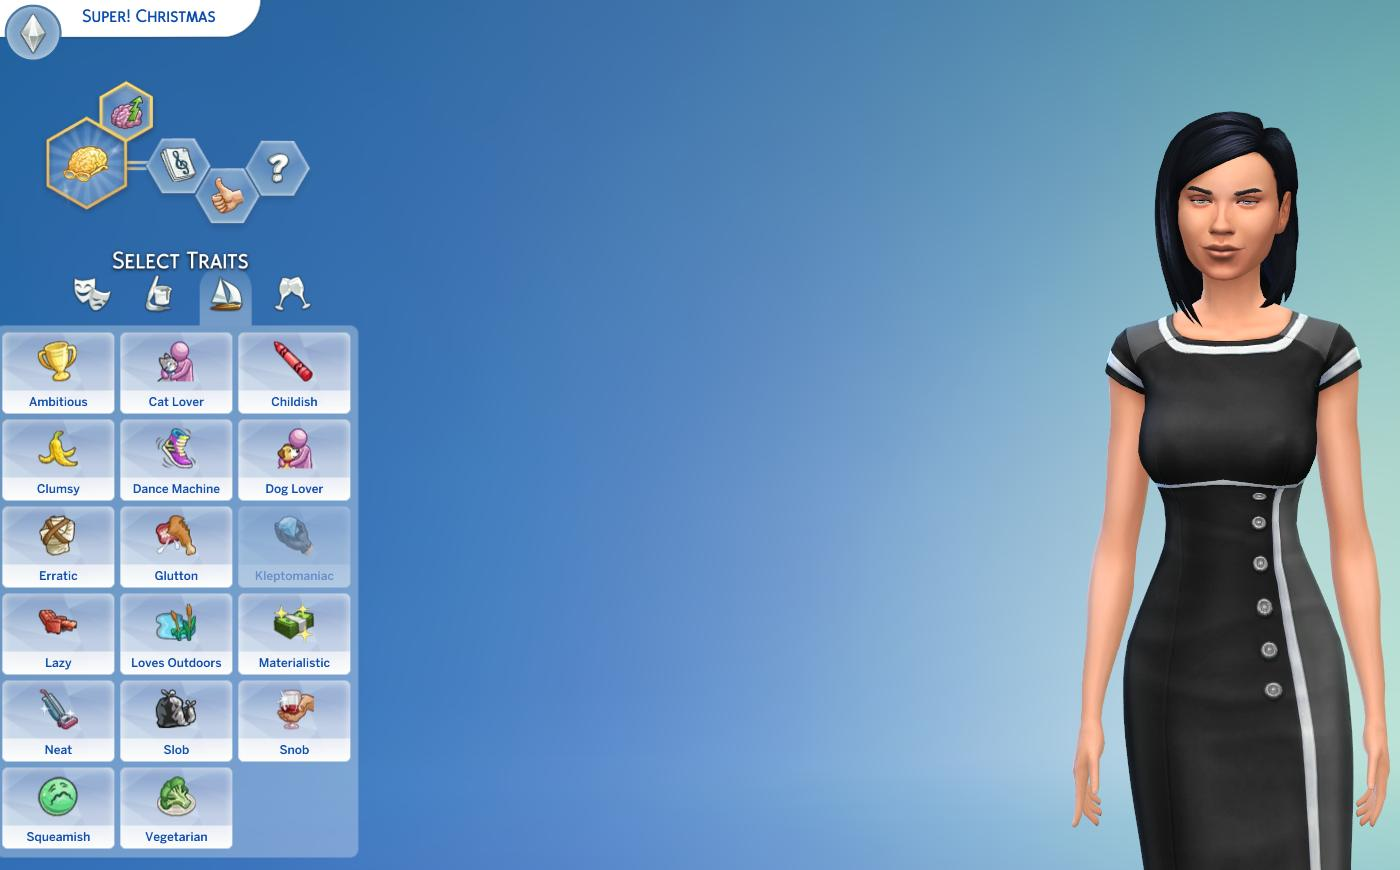 The Sims 4 Trait Cheats List - Reward, Bonus and Aspiration